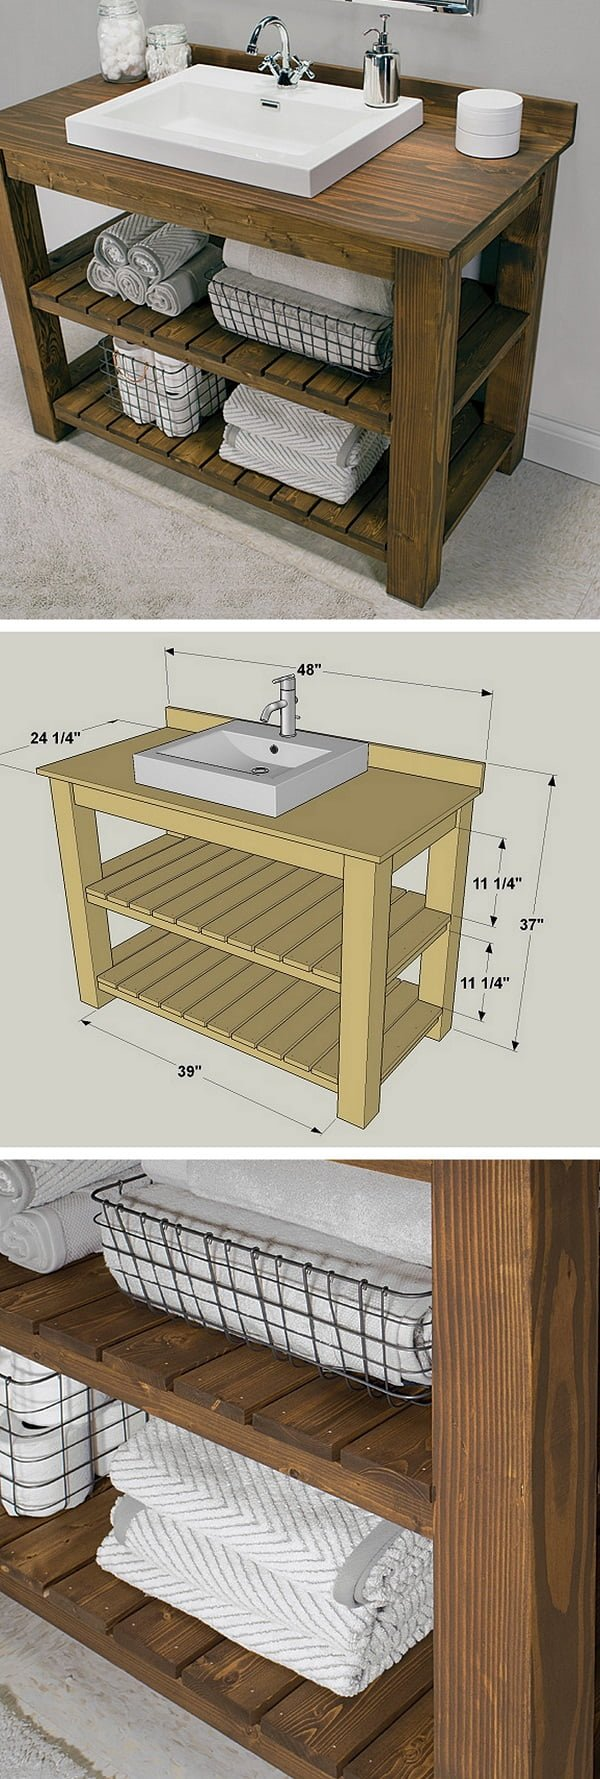 How to make a  rustic bathroom vanity